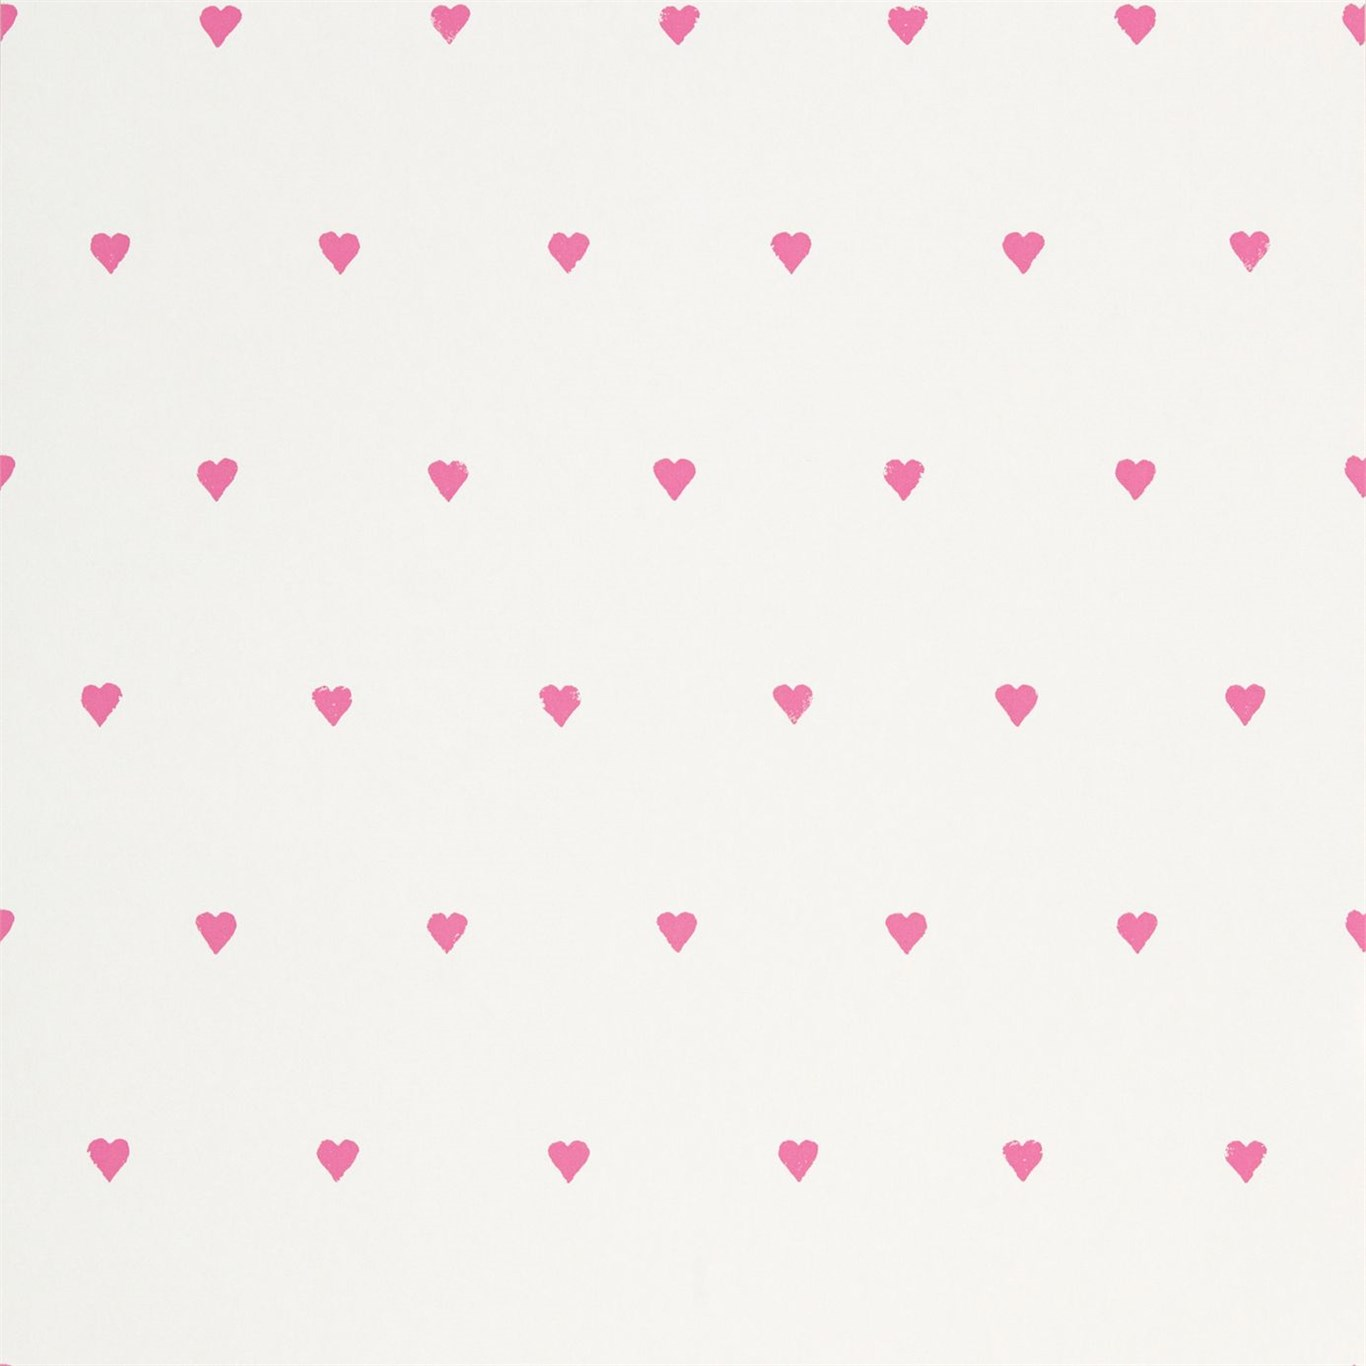 Harlequin All About Me Love Hearts Pink Wallpaper 110553 Untouchables Wallpaper Paint Furniture Scotland